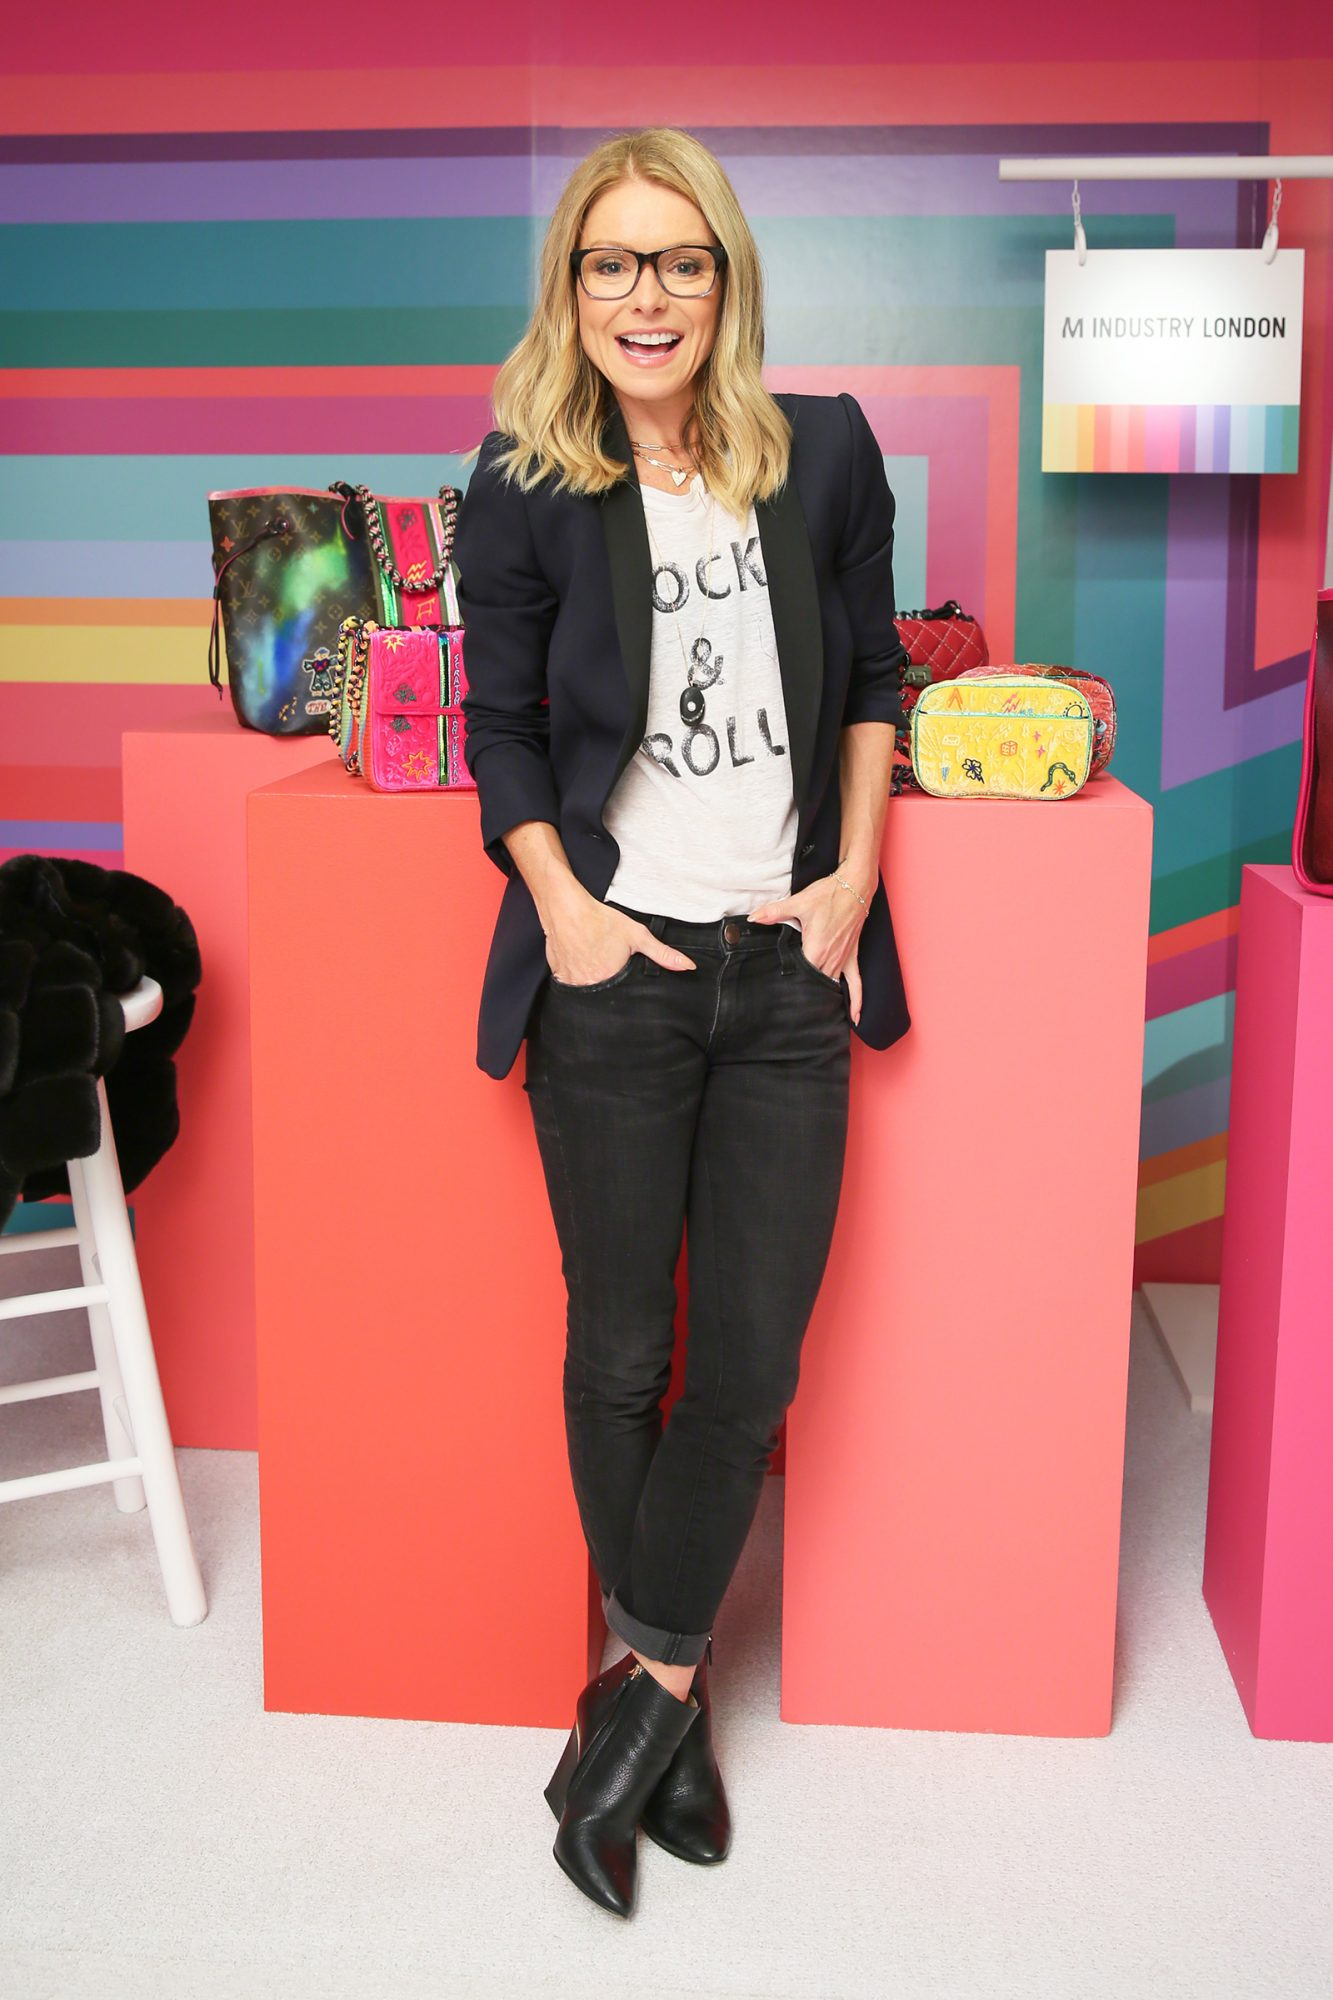 Kelly Ripa attends LTD by Lizzie Tisch: Holiday Shopping Event, Loews Regency New York, NYC on November 11, 2019